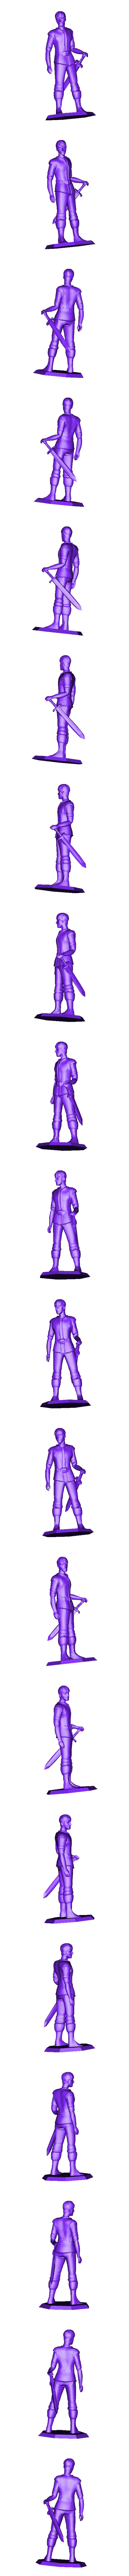 YoungLord_HandOnHilt.stl Download free STL file Young Hero (multiple poses) • 3D print object, stockto